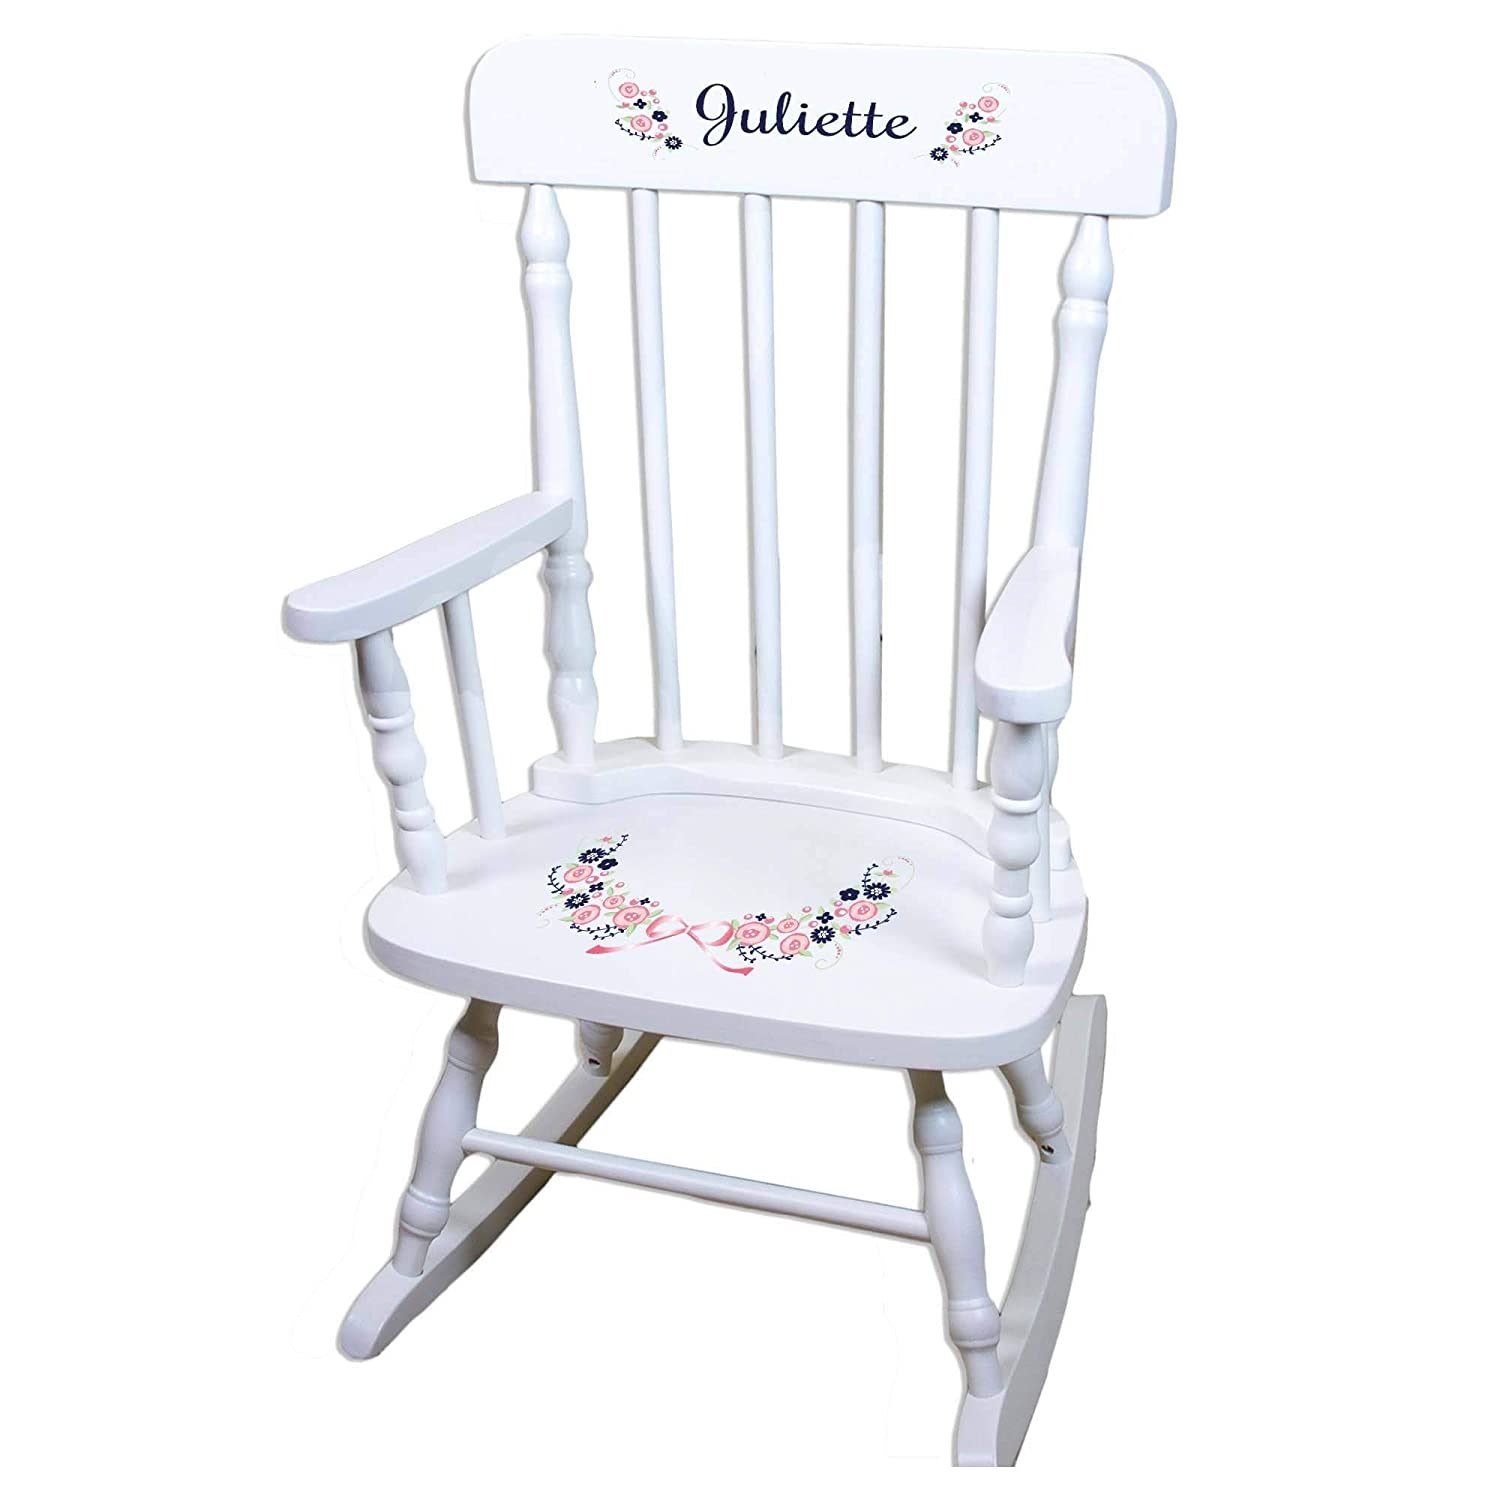 MyBambino Personalized Navy Pink Floral Garland White Wooden Childrens Customized Nursery Baby Girls Rocking Chair